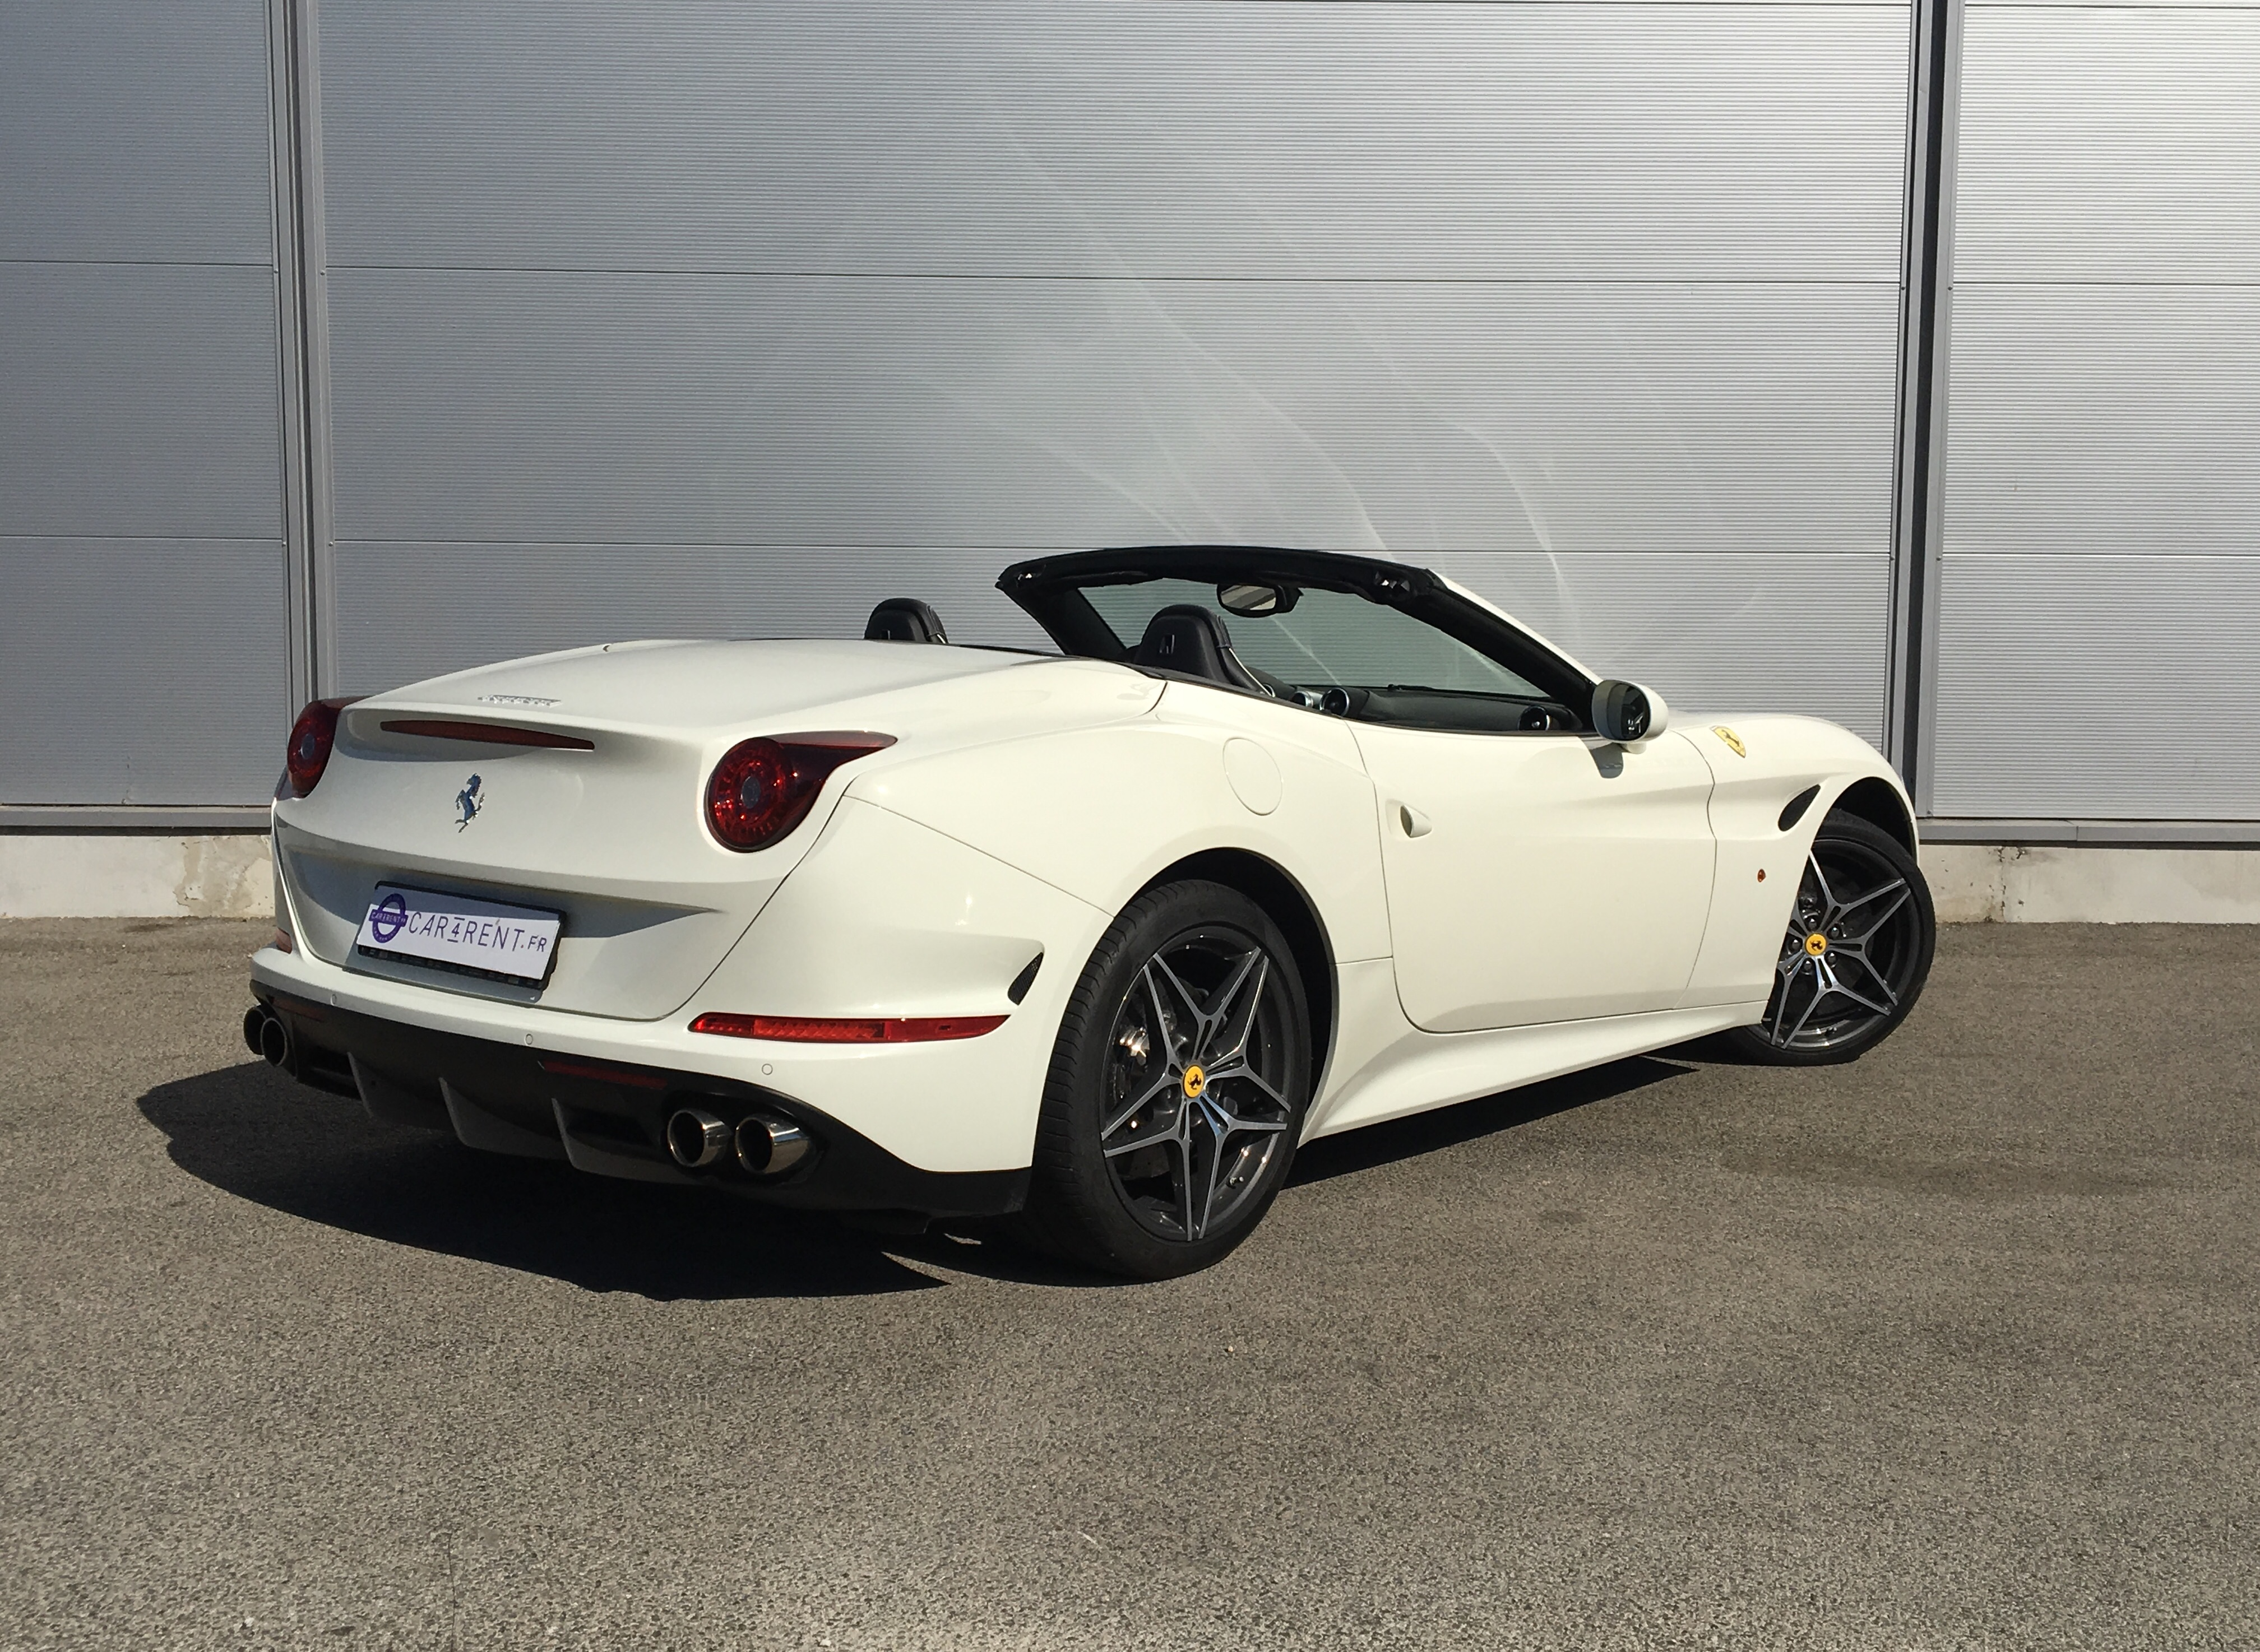 louer ferrari california cannes Car4rent